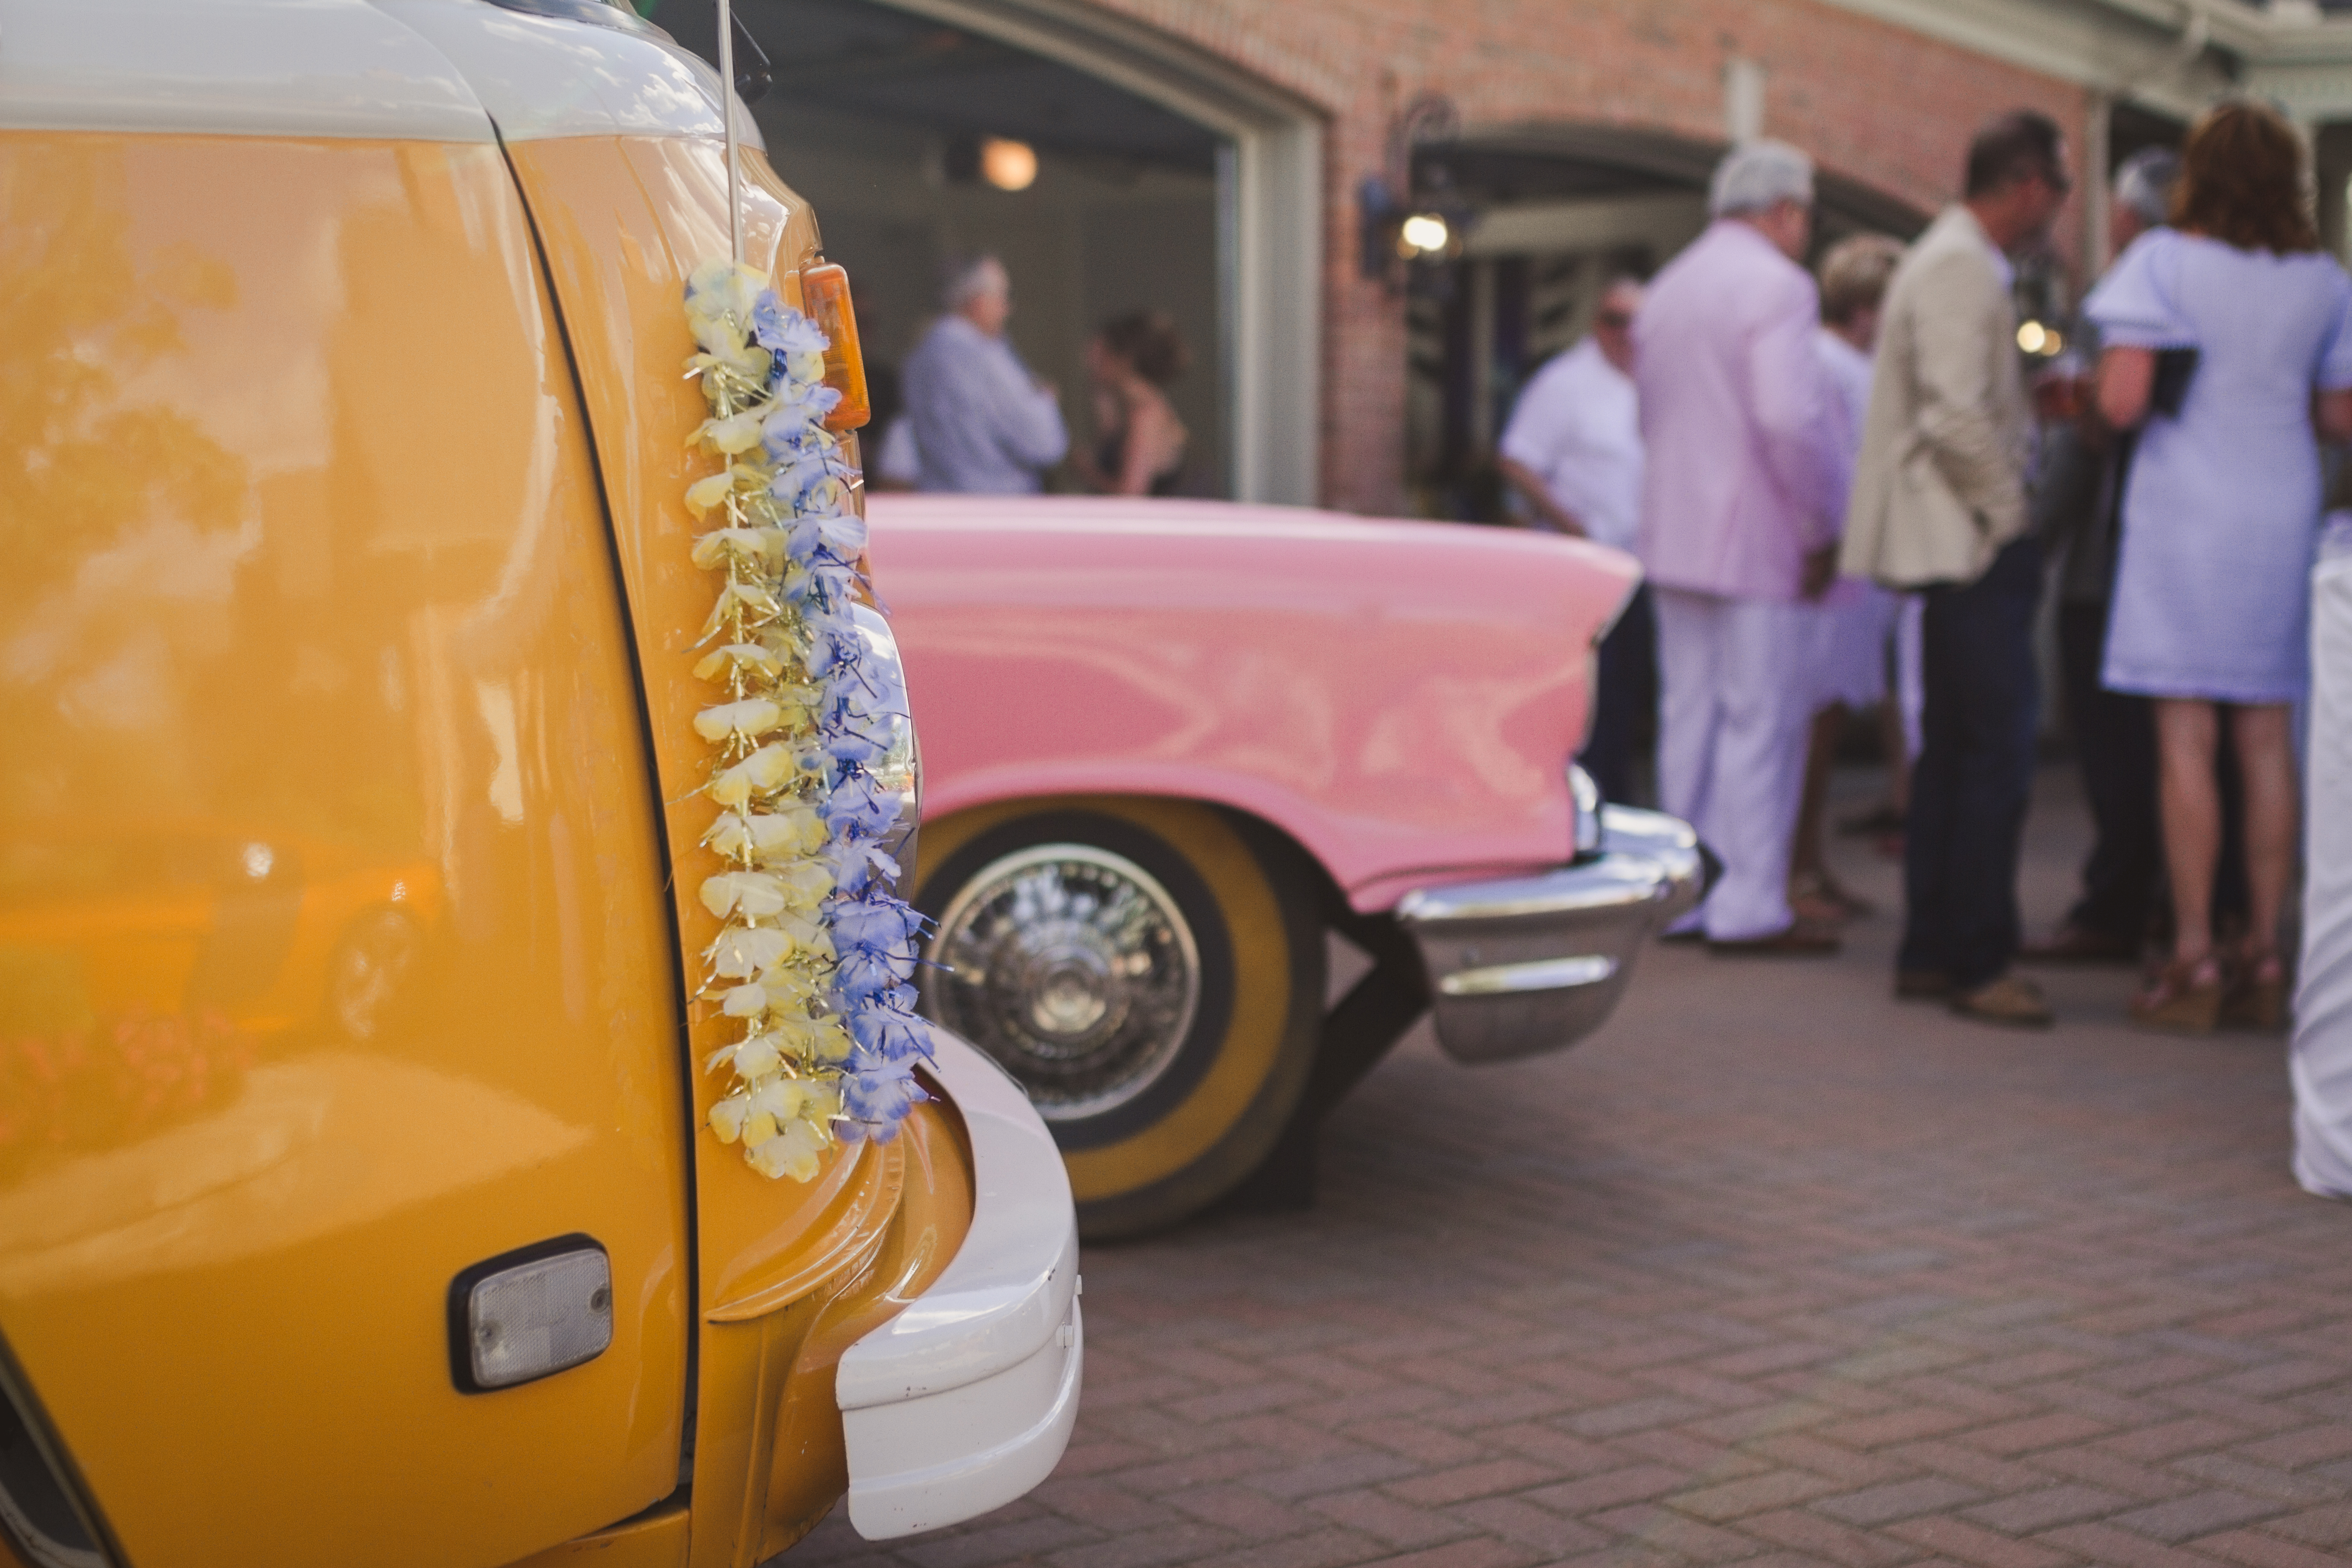 MI Photo Booth | miphotobooth | Photo Booth | West Michigan Photo Booth | Volkswagen Bus | VW Photo booth bus | Southwest Michigan Event | Photo booth bus | west Michigan event | vintage | bohemian wedding | hippie style | 77 Kombi | air cooled | Michigan photographer | michigan events | barefoot wedding | outdoor wedding ideas | corporate event planner | michigan venue | west michigan event | grand rapids event | lakeshore wedding | class reunion | beer fest | hopstock | grand rapids, MI | MI brewery | music and beer | calder plaza | downtown GR | western michigan university | kalamazoo college | volkswagen photo booth | photo booth rental | sundance studio | benton harbor | wedding venue | lansing photo booth | allegan | Rochester Hills | michigan wedding venue | unique photobooth